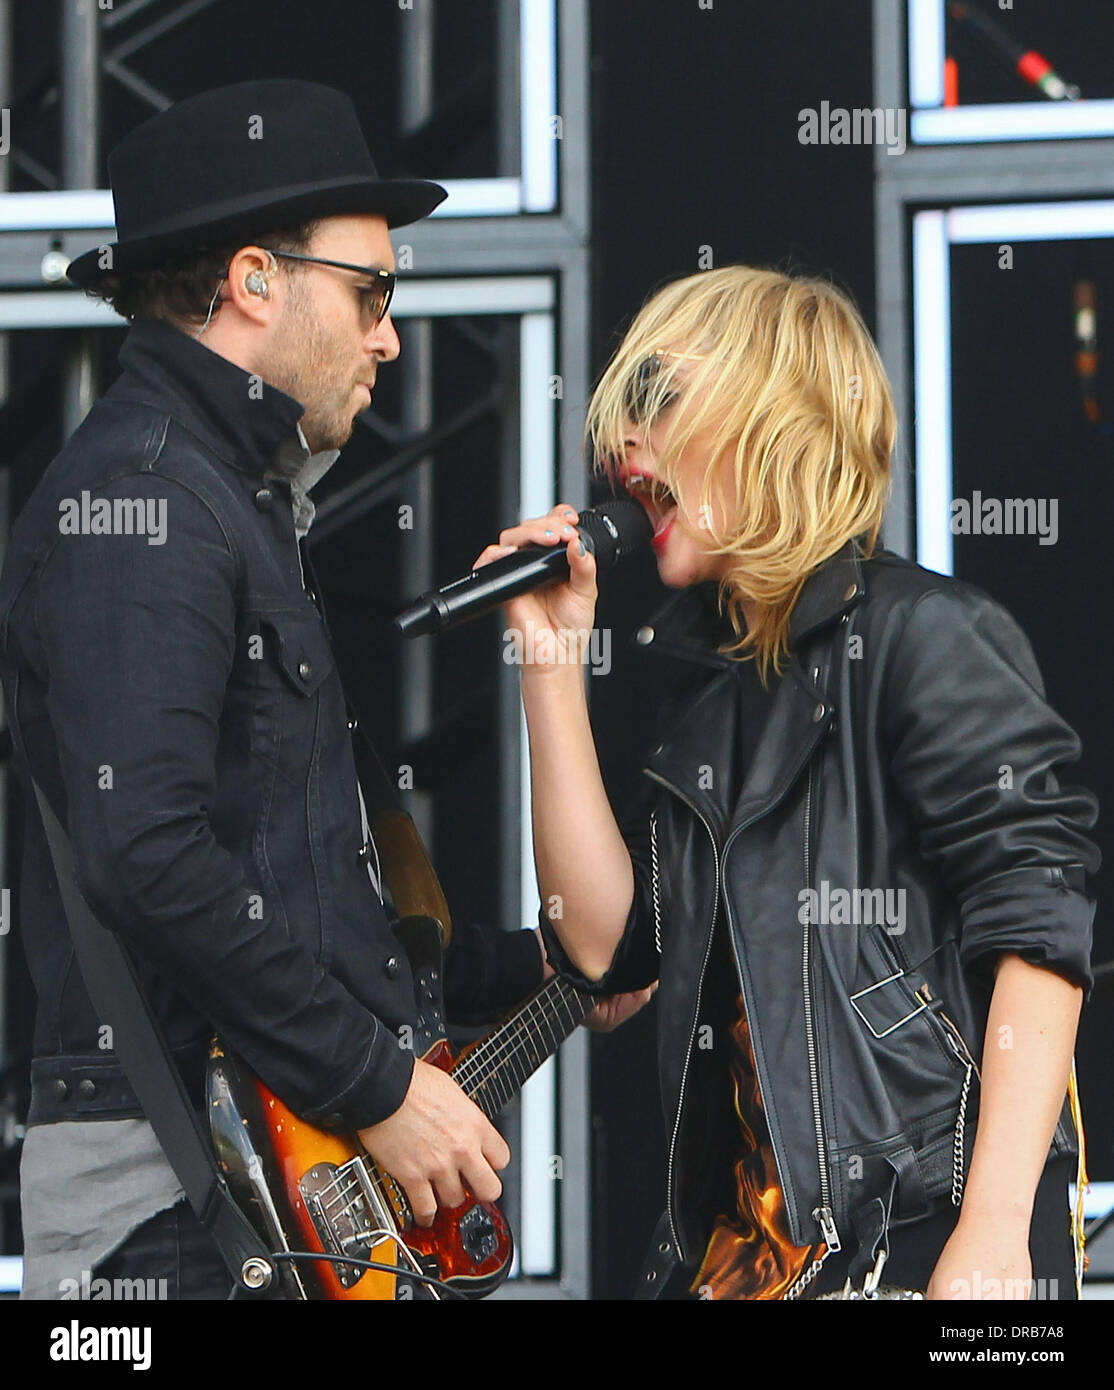 James Shaw and Emily Haines of Metric Barclaycard Wireless Festival 2012 - Day 1 London, England - 06.07.12 Stock Photo